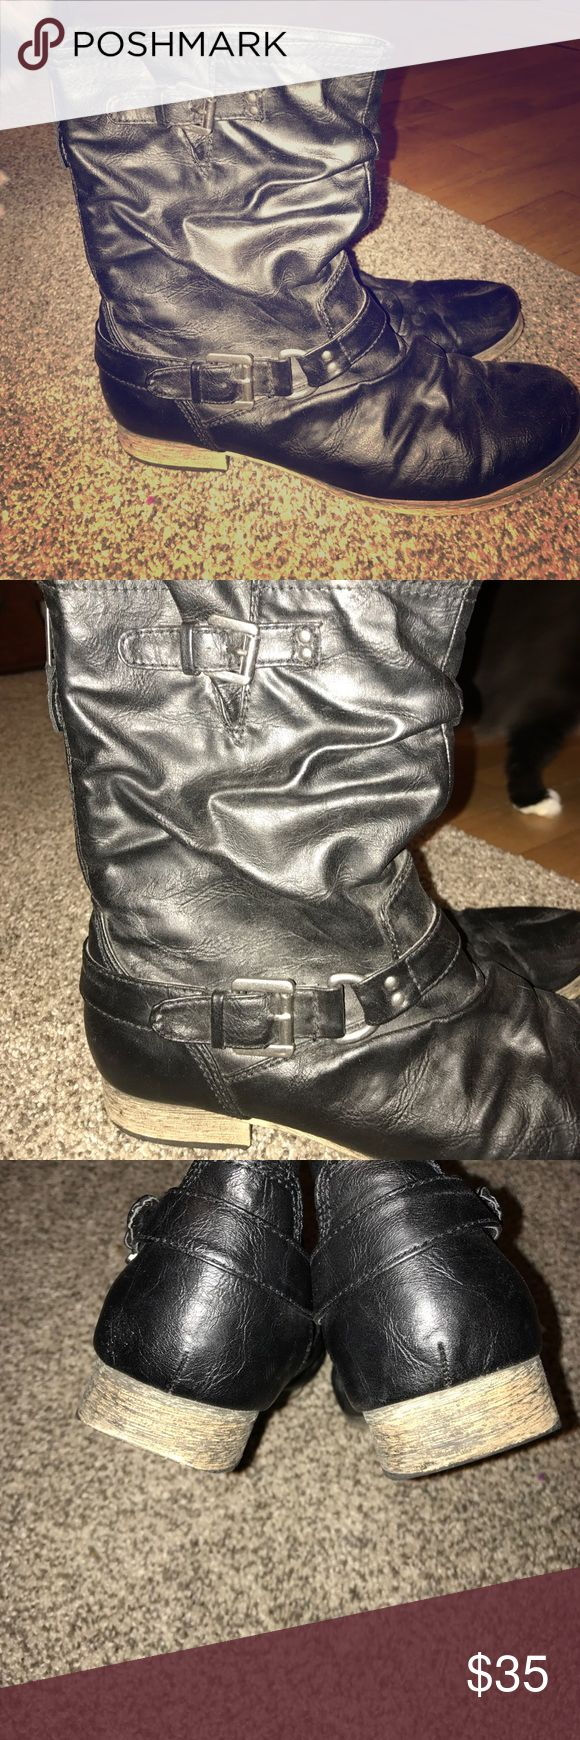 Carlos Santana Boots Carlos by Carlos Santana Boots - Gently worn - Black - Leather - has zipper and buckle details -  not right around calf like a combat boot - Heels show a little wear (pictured) but barely noticeable - shorter boot go up to about mid calf or lower - EUC 👢 Carlos Santana Shoes Combat & Moto Boots